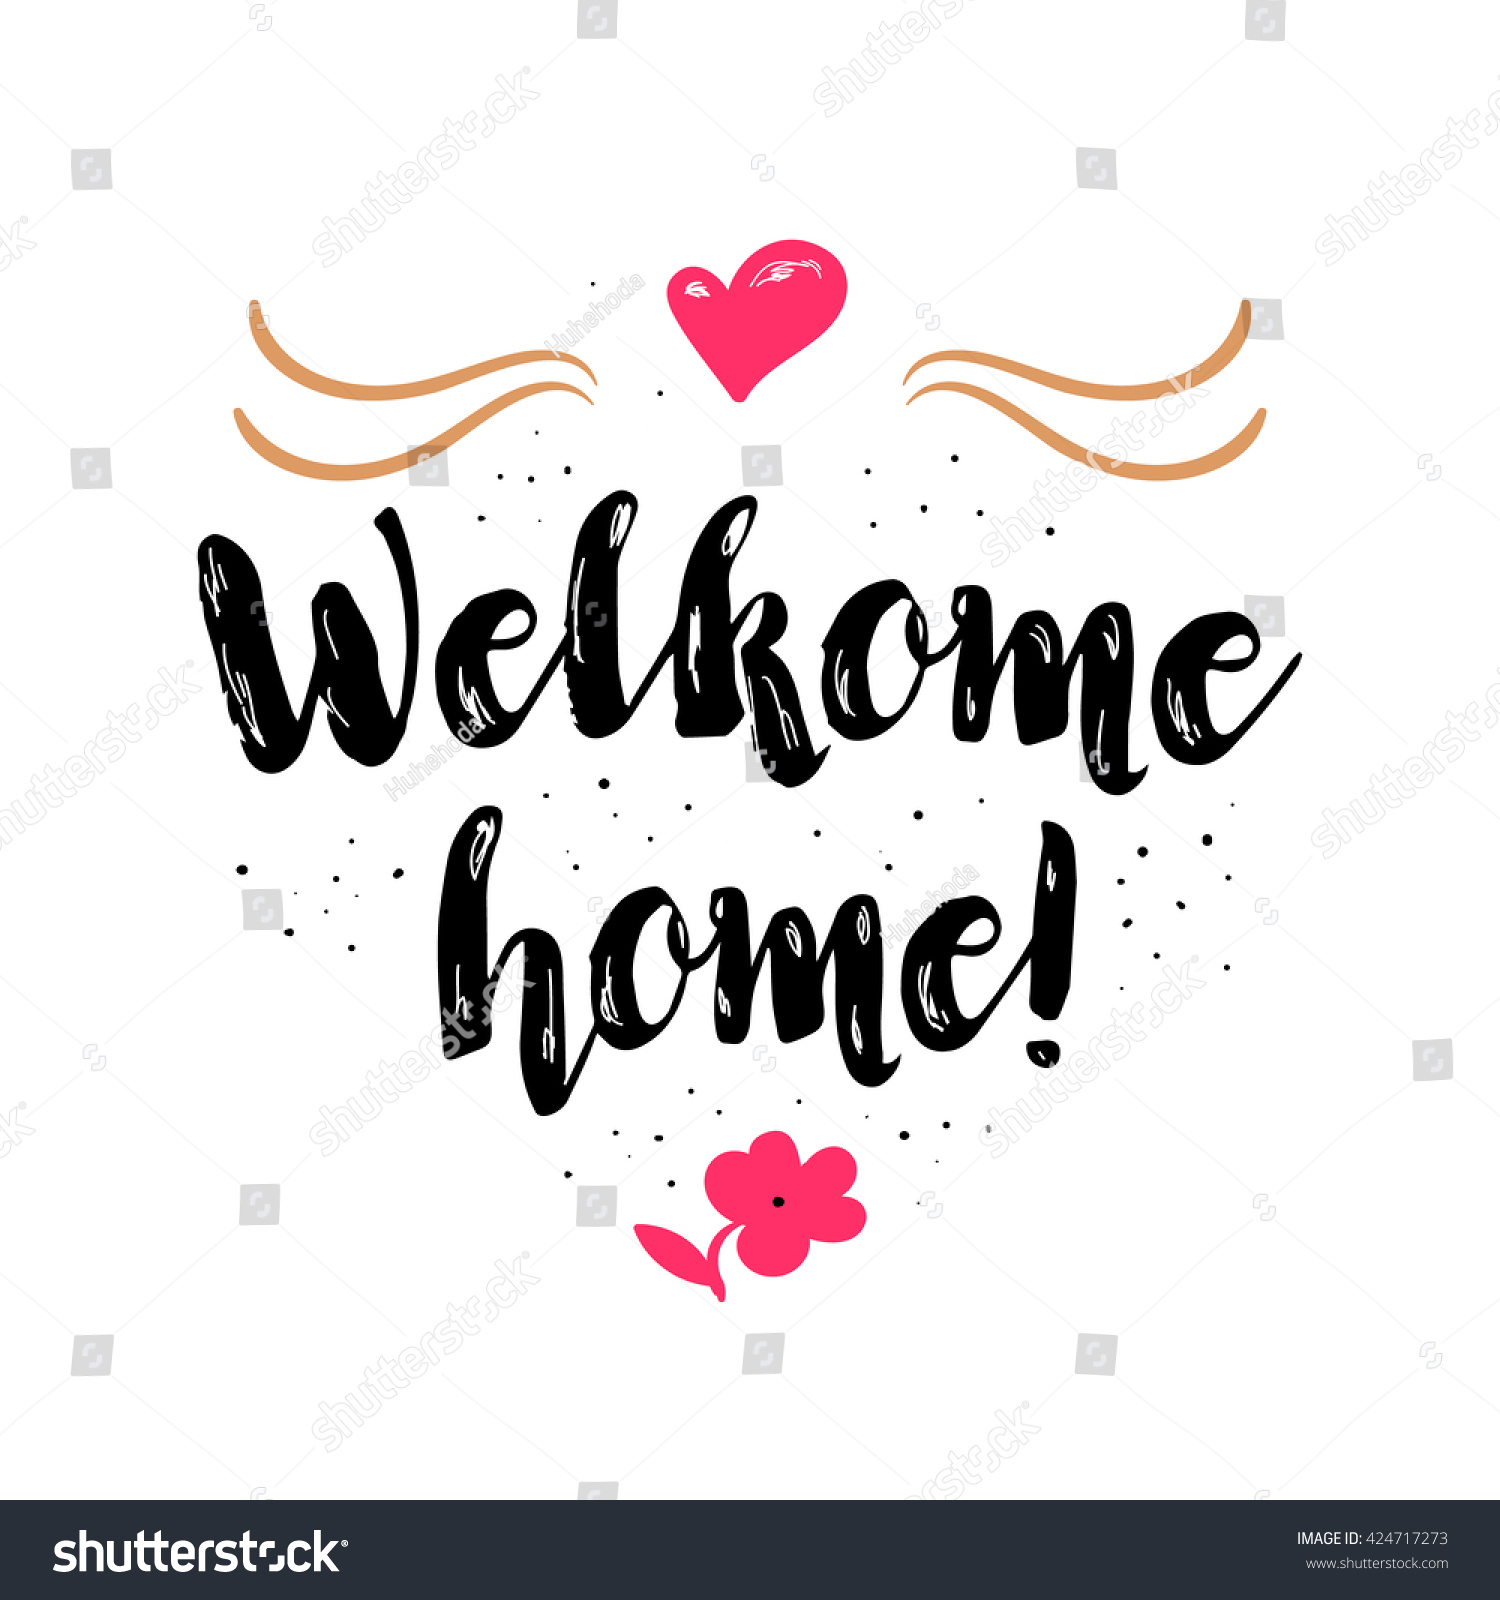 Welcome Home Artistic Greeting Card Poster Stock Vector HD (Royalty ...